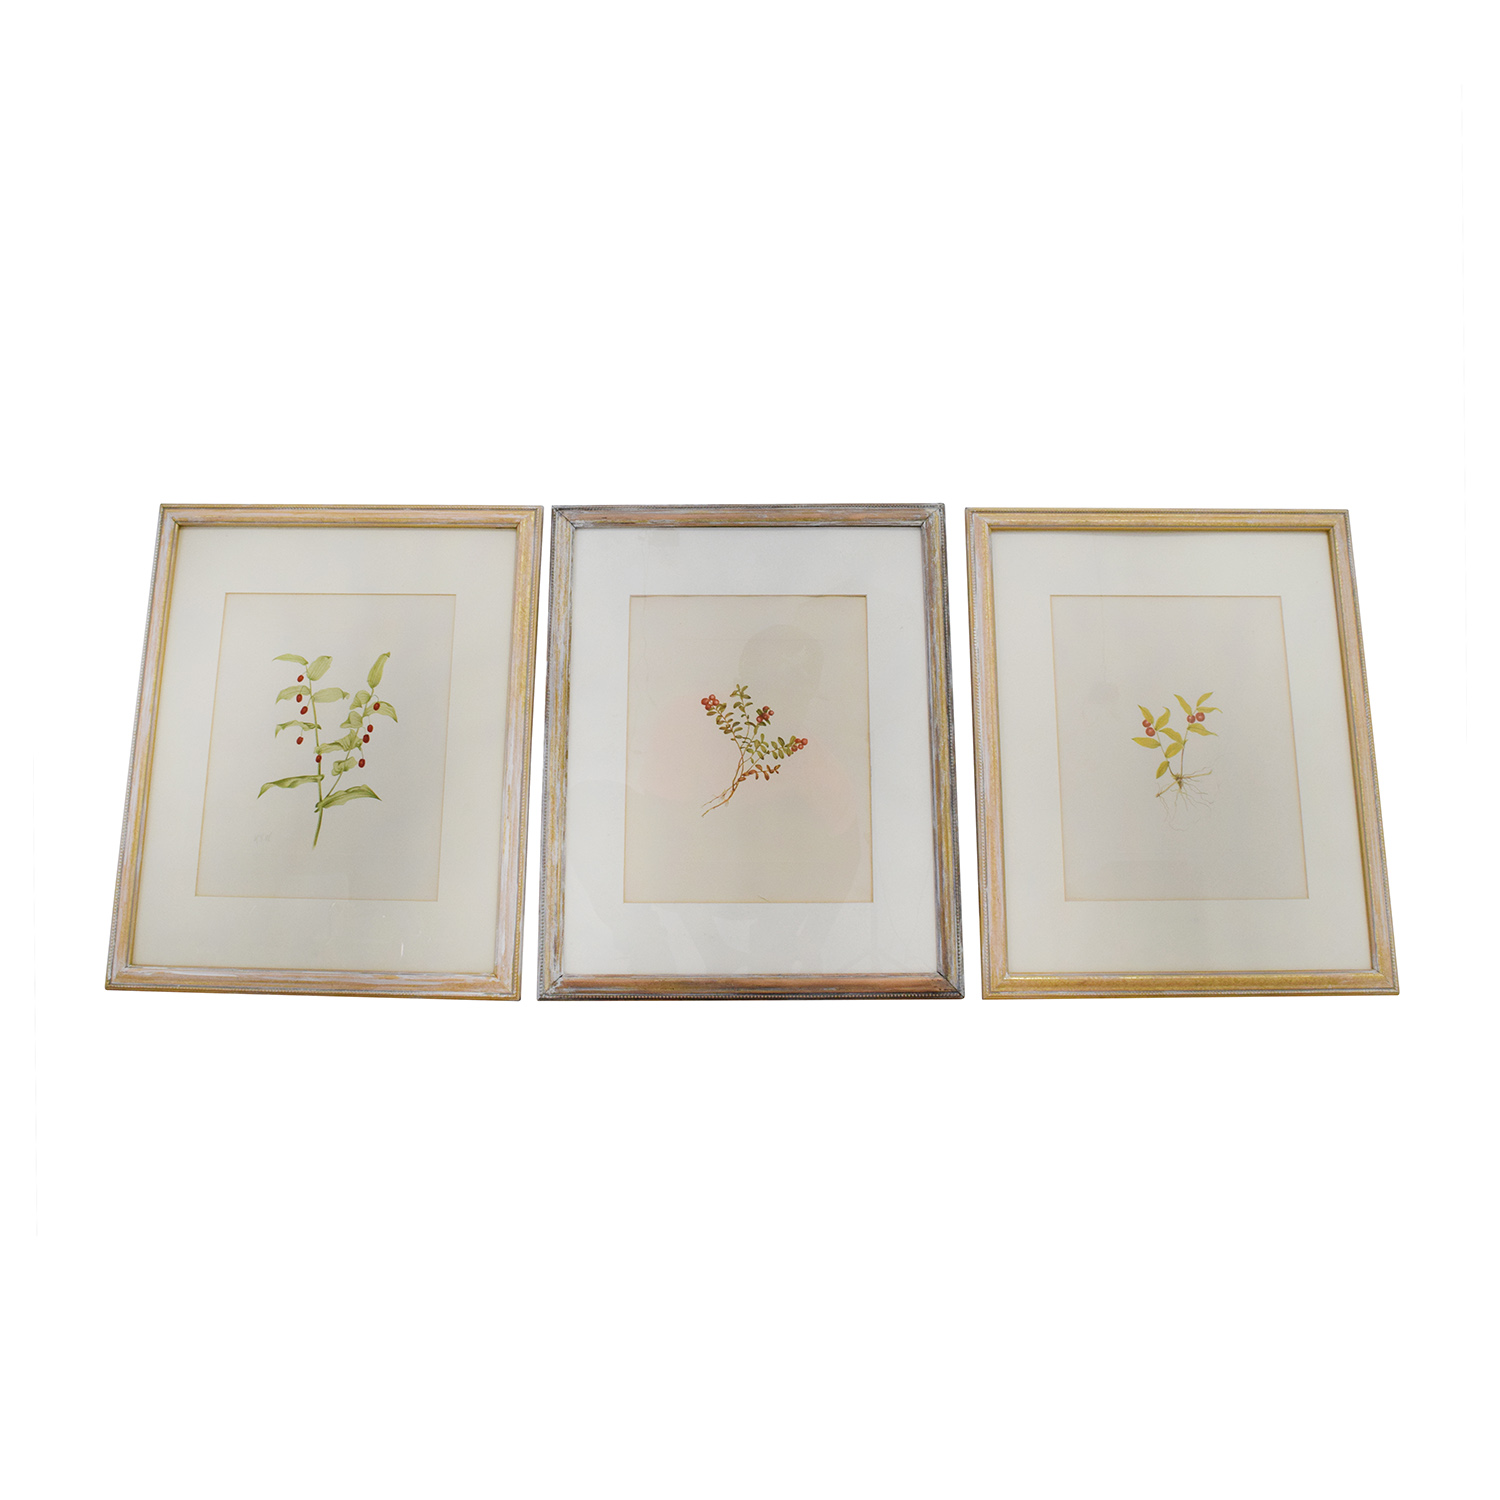 Three Antique Gold Framed Botanical Prints Wall Art